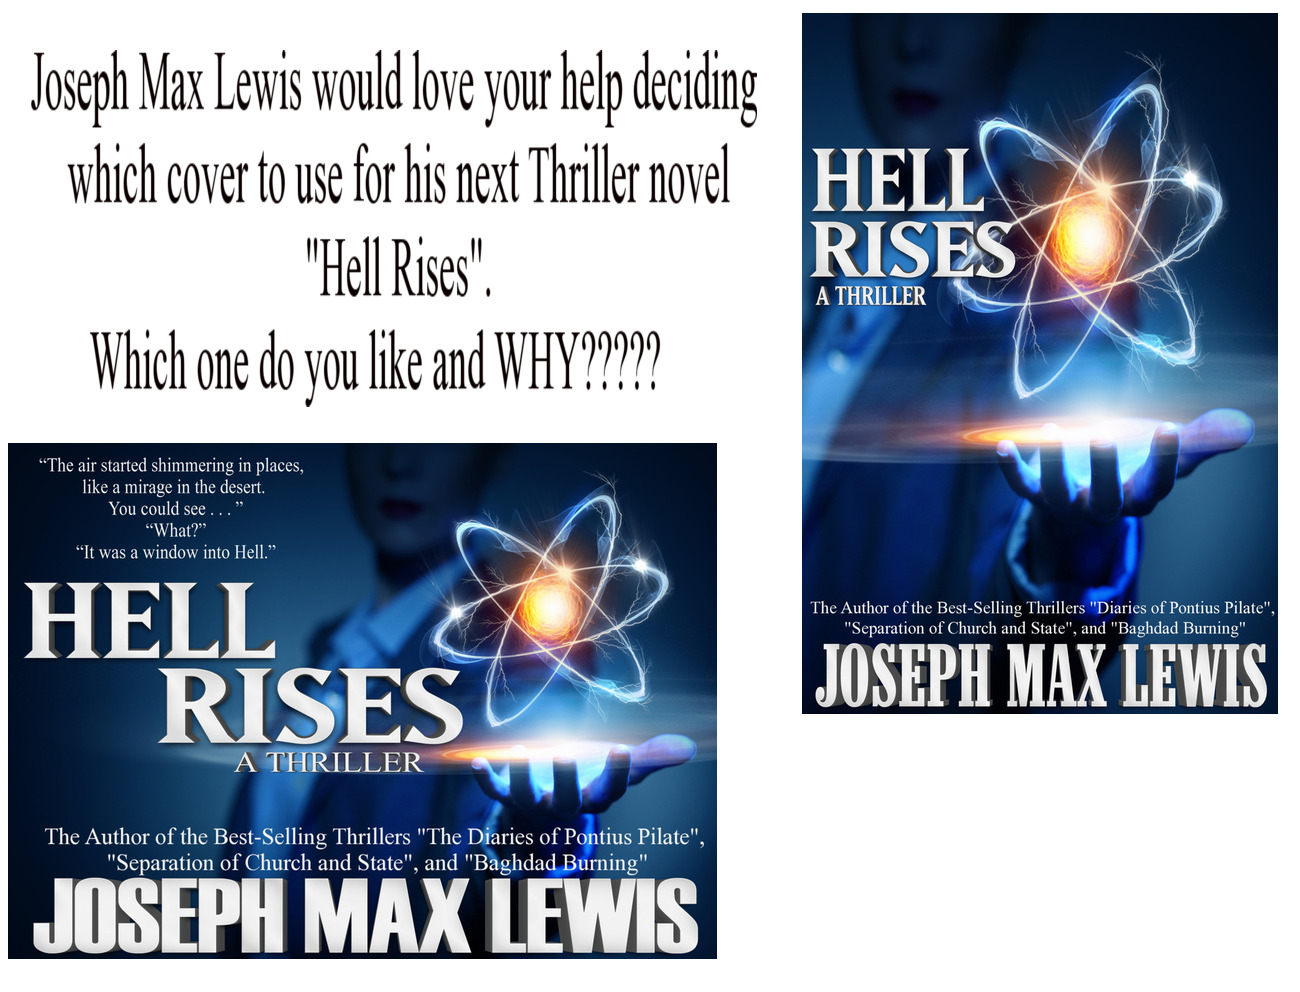 Please help Joseph Max Lewis pick the cover for his next Thriller novel!